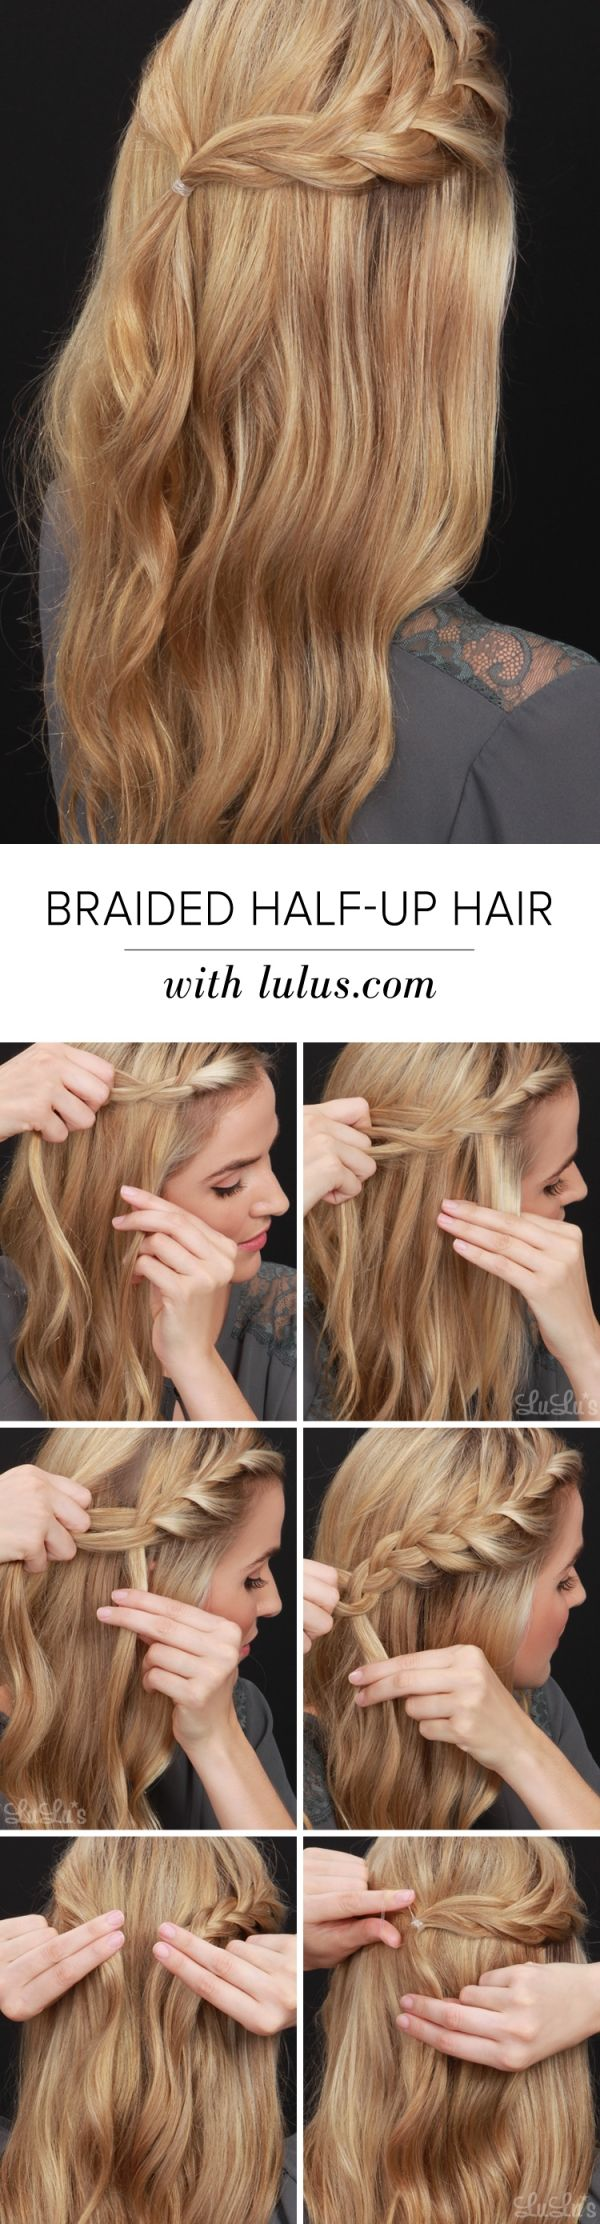 employee discount code online Fabulous Half Up Half Down Hairstyles